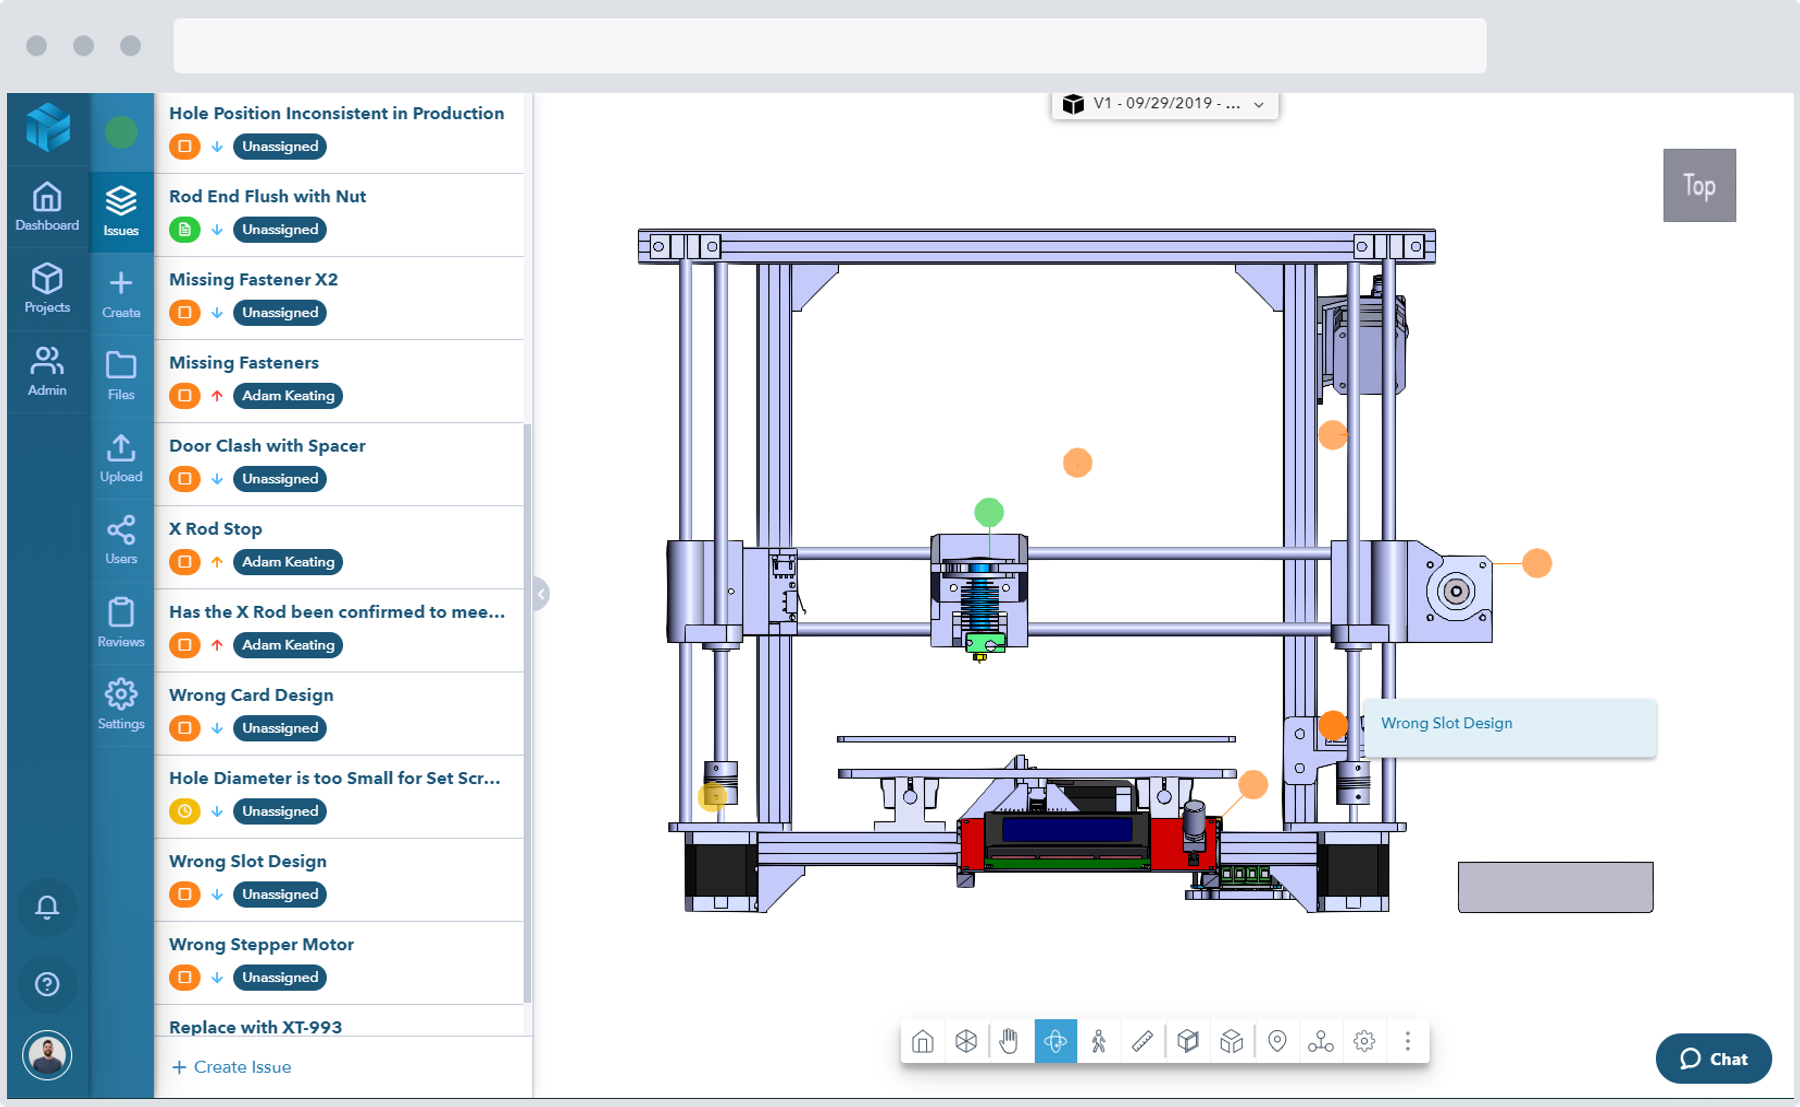 Screenshot of a cross section view of a mechanical design CAD model in the Gradient design review software